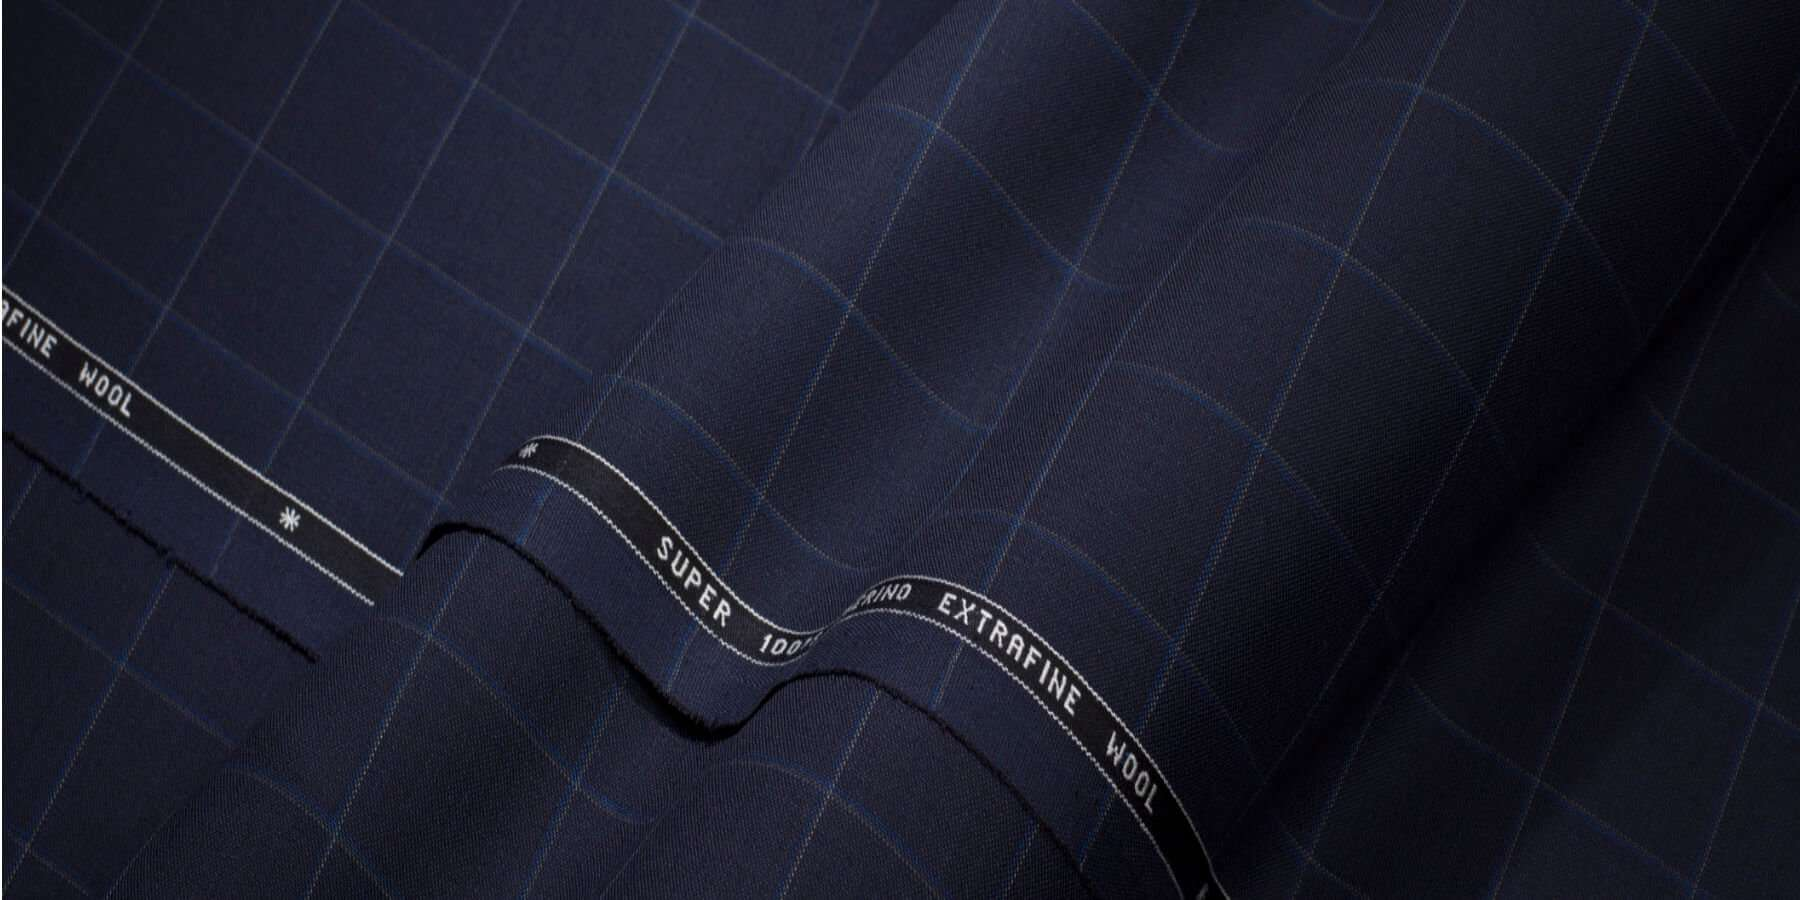 Heroic collection is a year round suiting staple